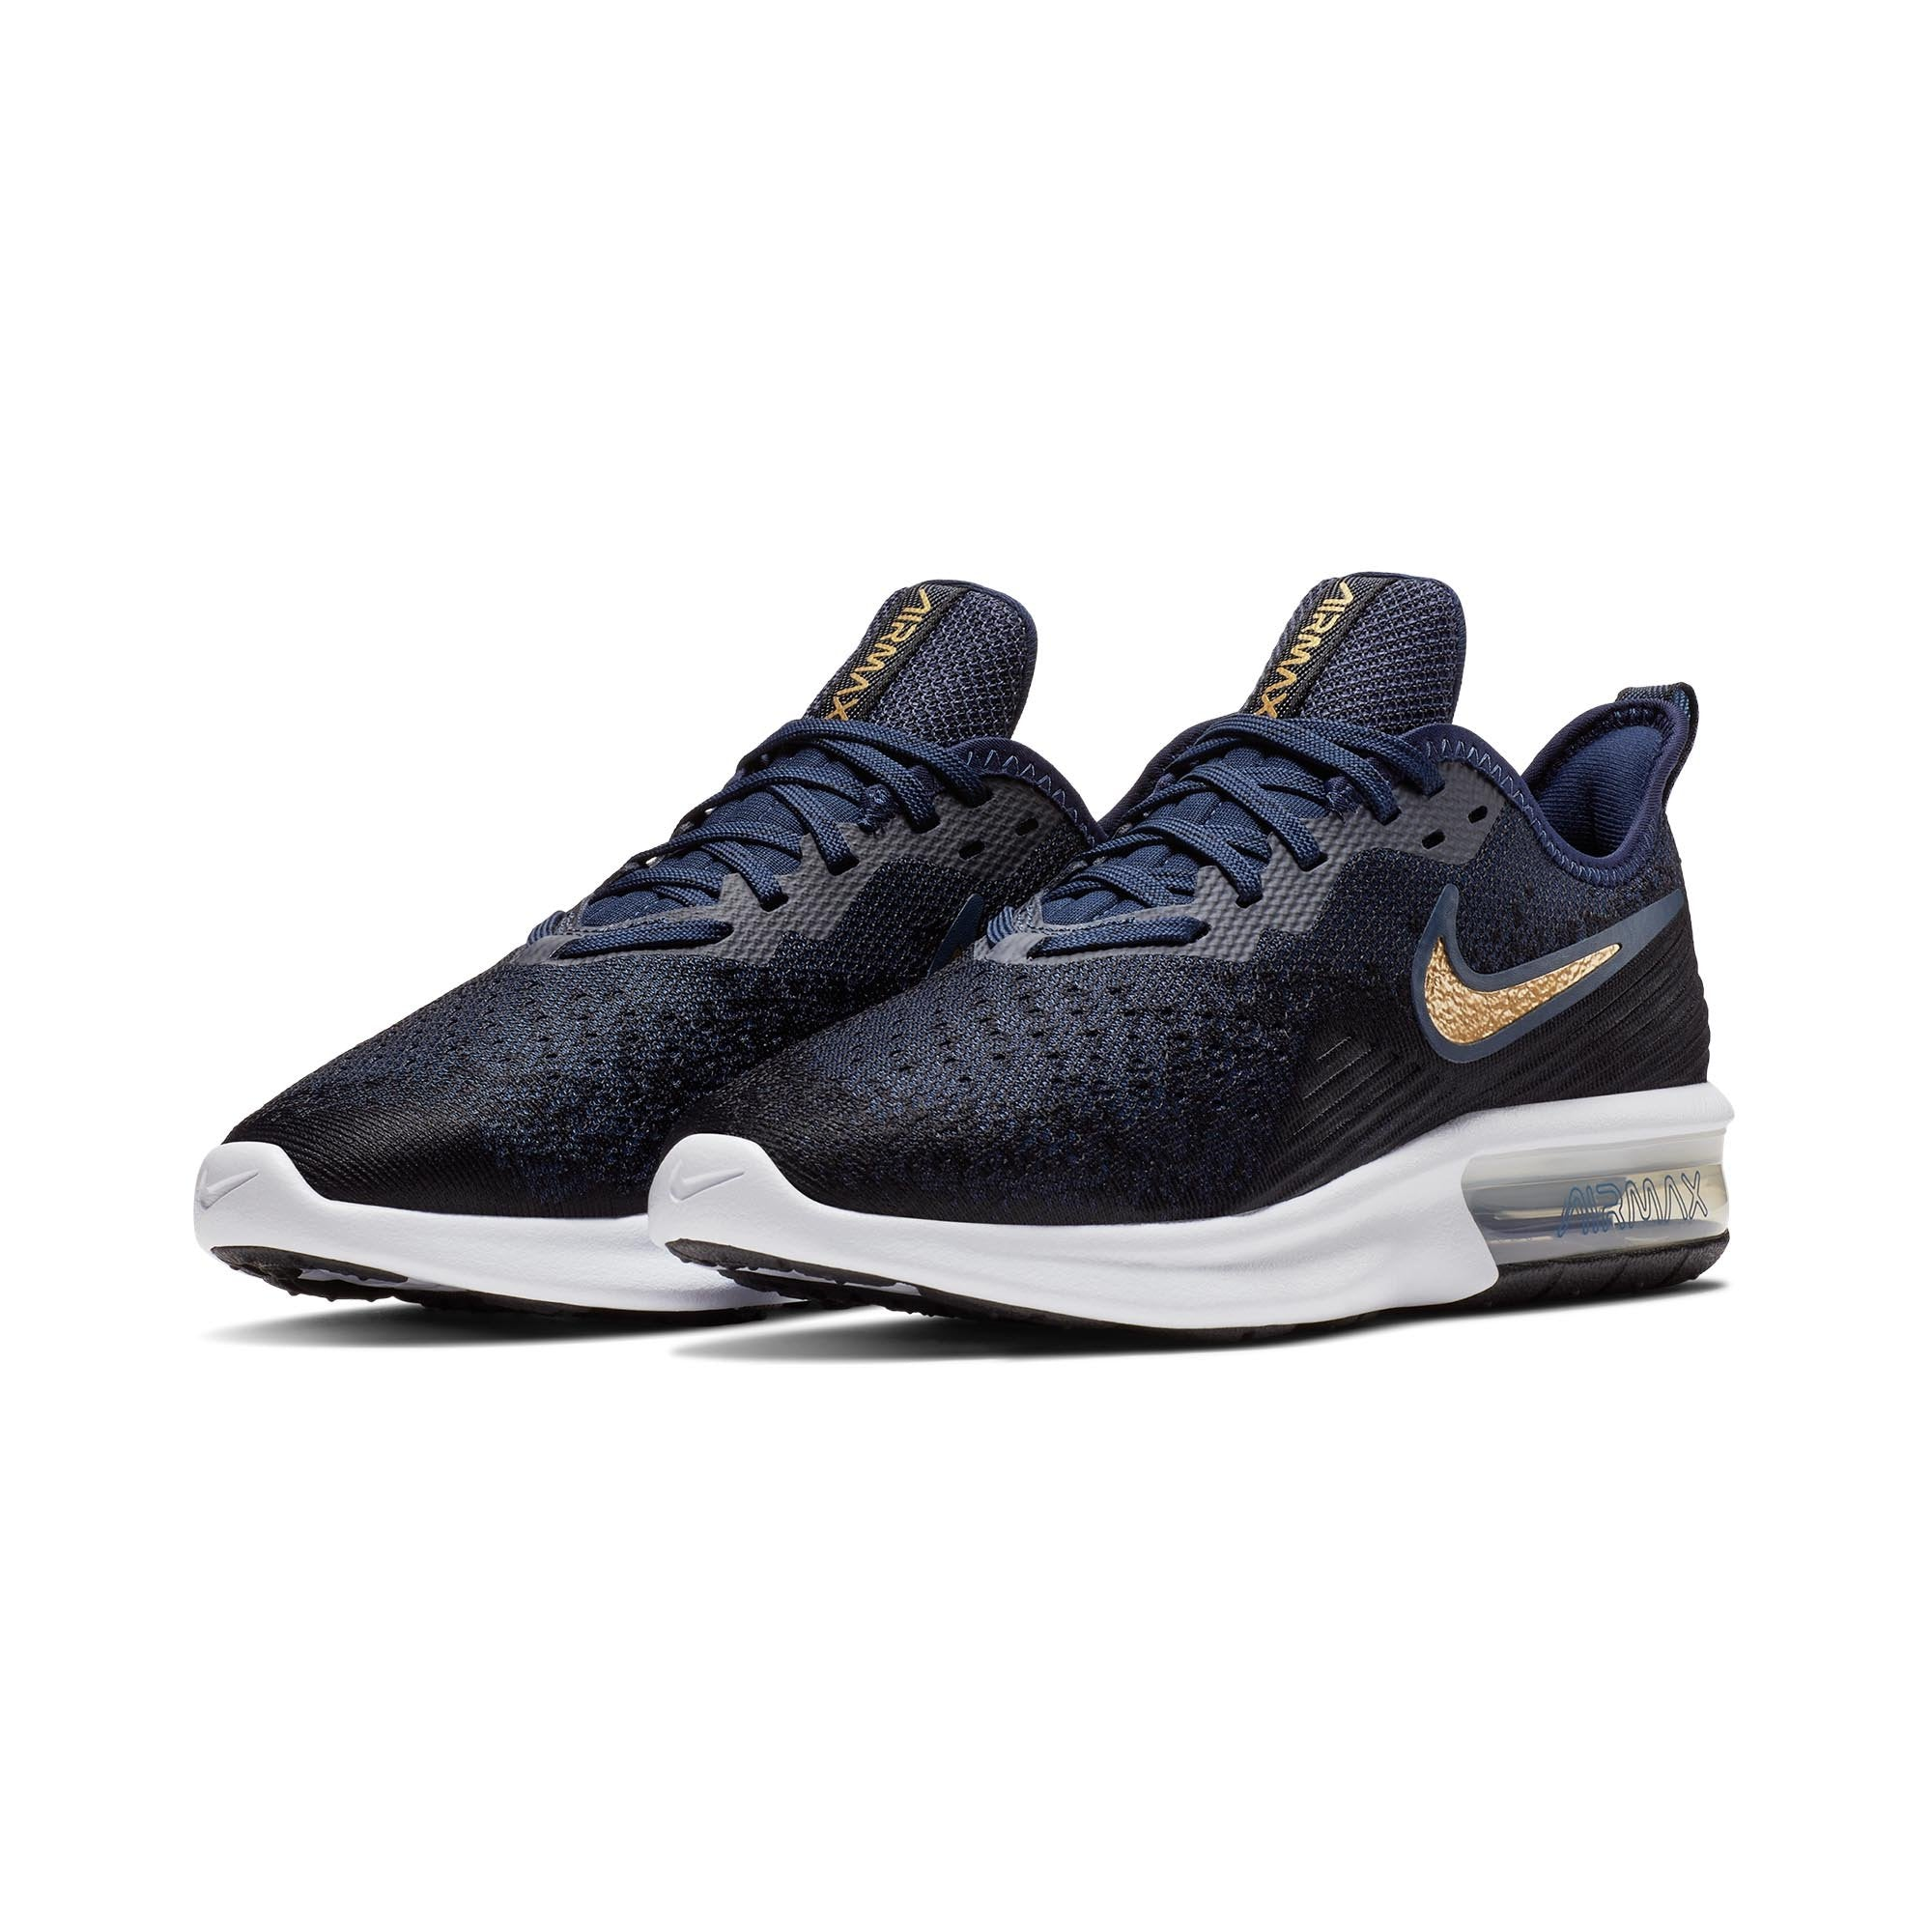 separation shoes 87a00 c8c88 Singapore NIKE Women Air Max Sequent 4 Running Shoes, Black Metallic Gold  Obsidian